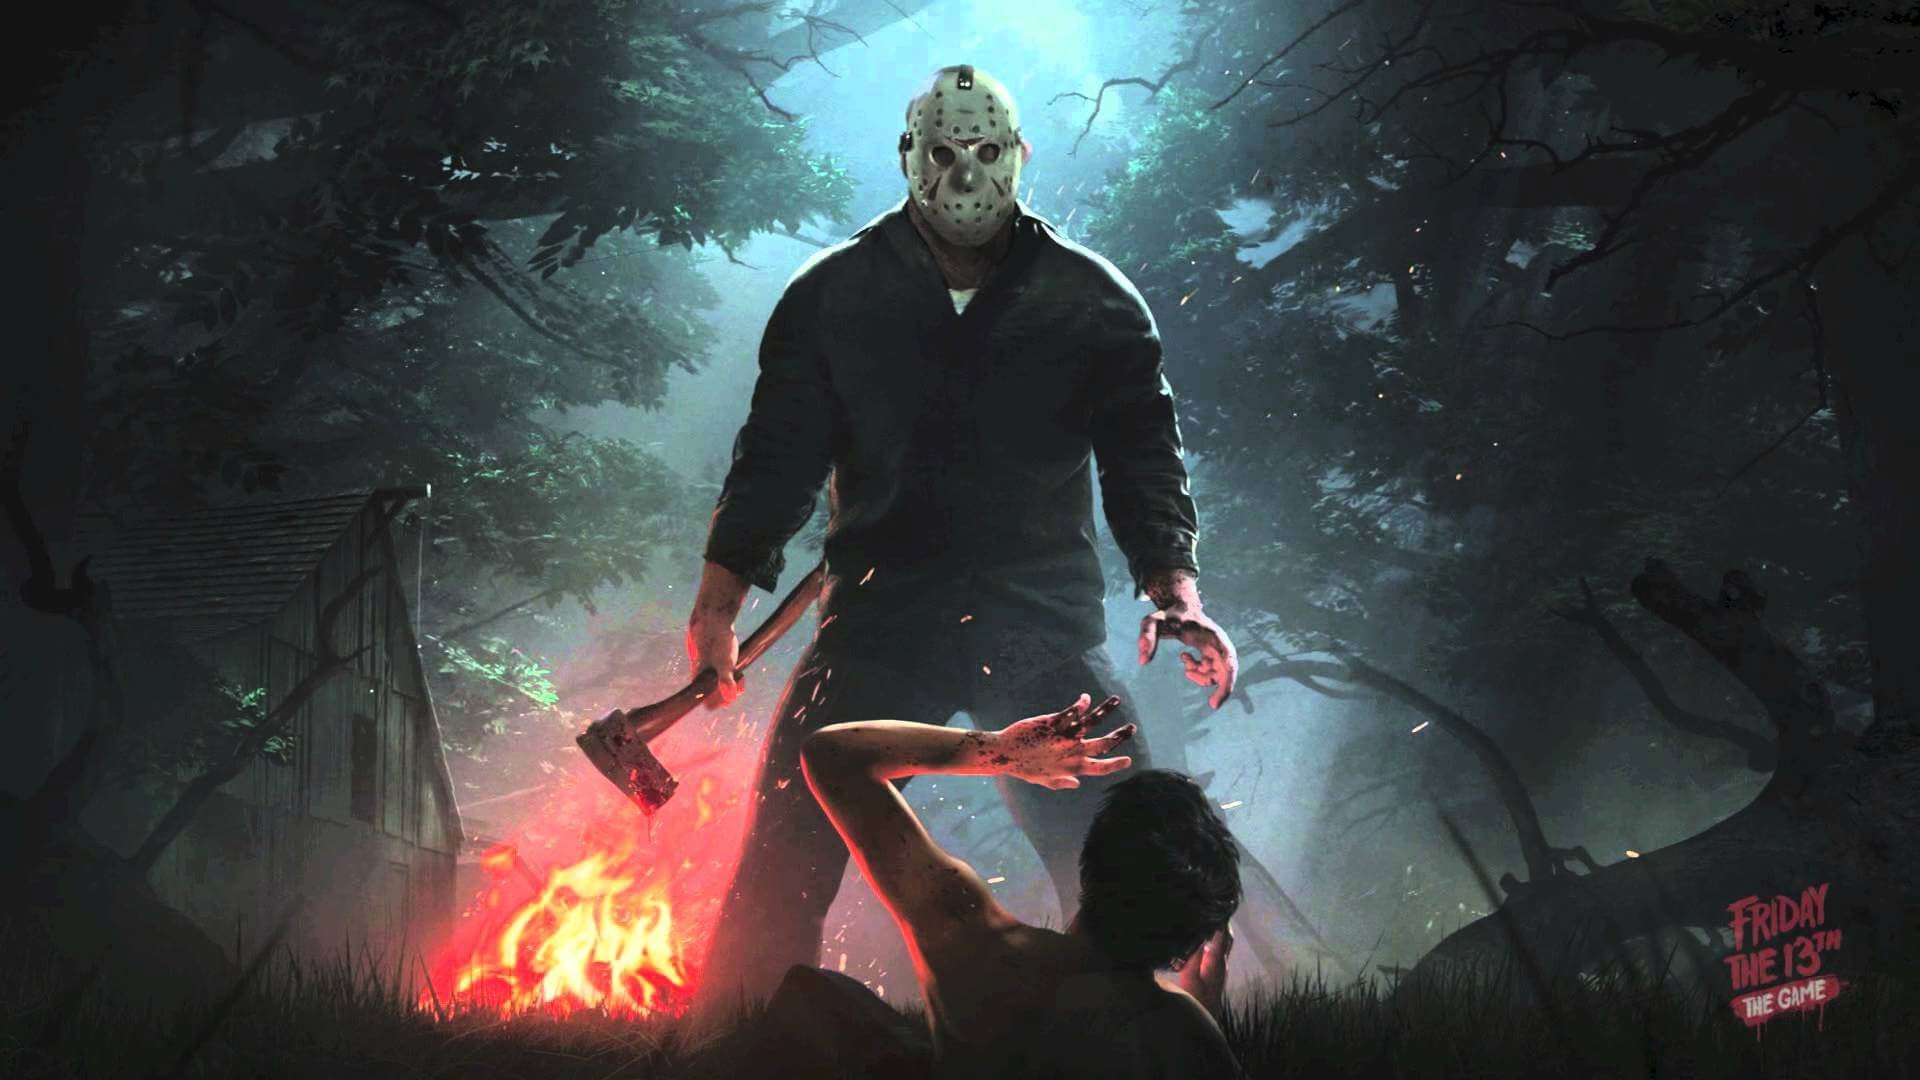 1920x1080 Friday the 13th: The Game HD Wallpaper 6 - 1920 X 1080